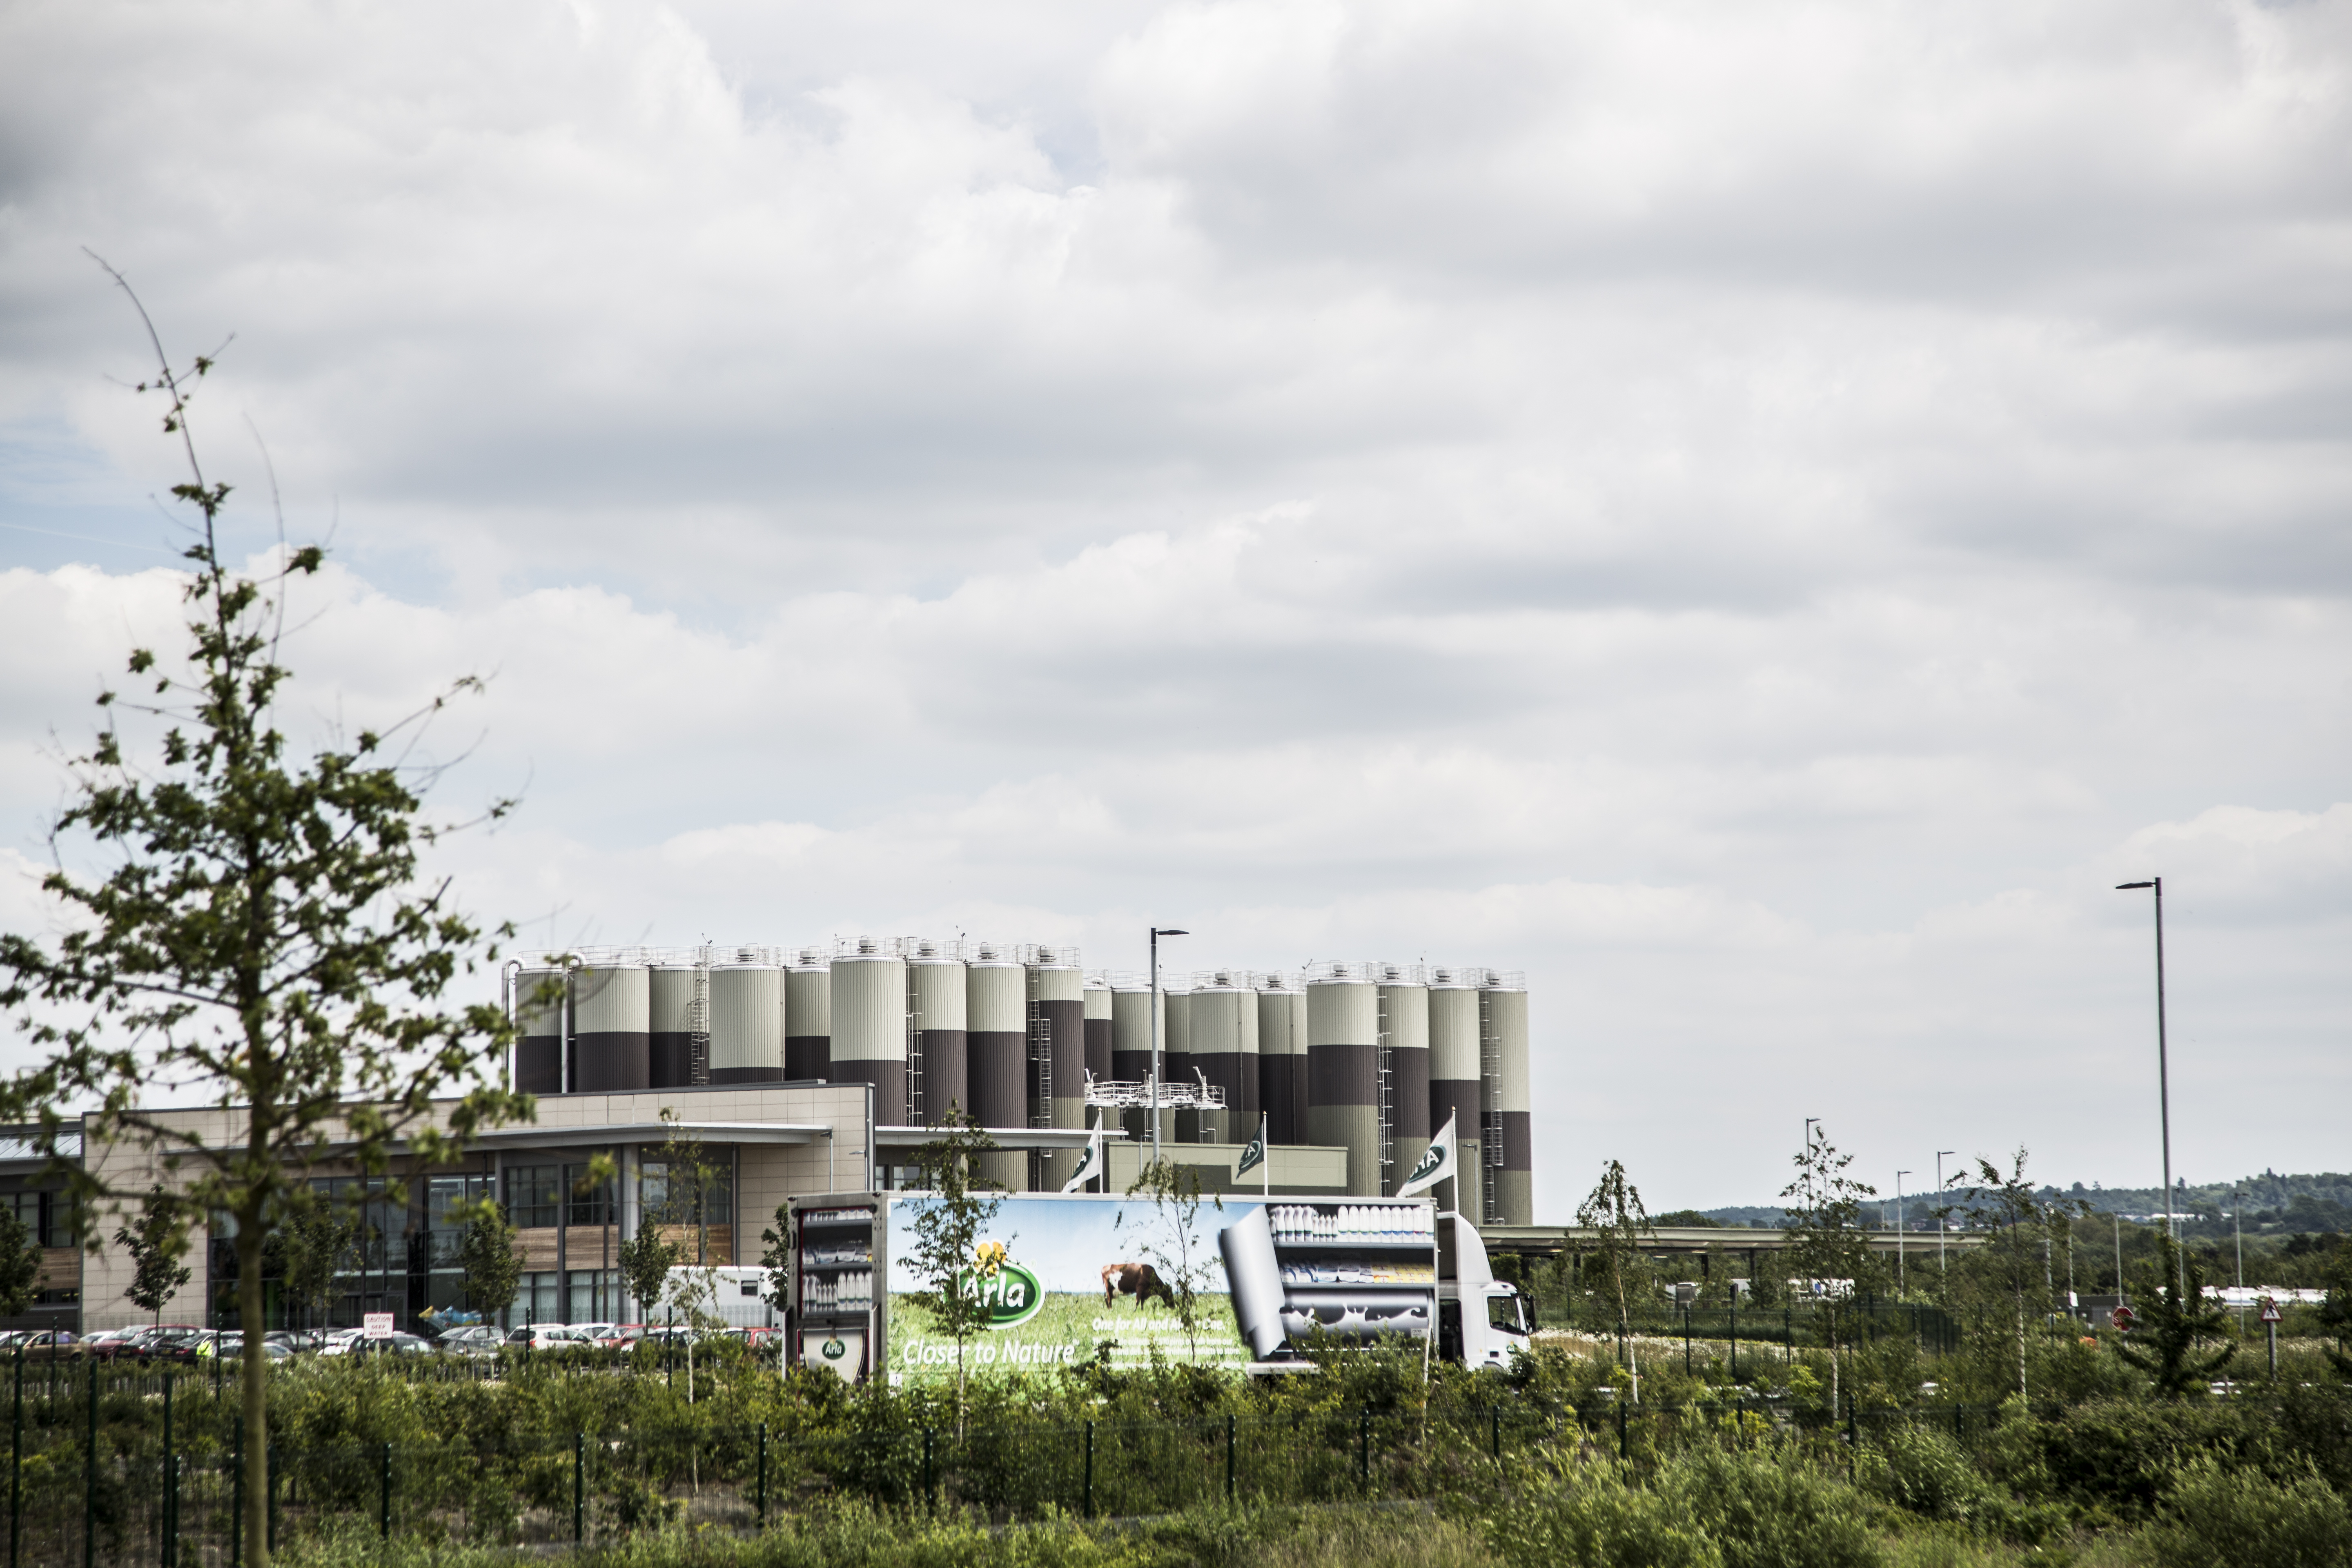 Arla turns up investments to boost profitability